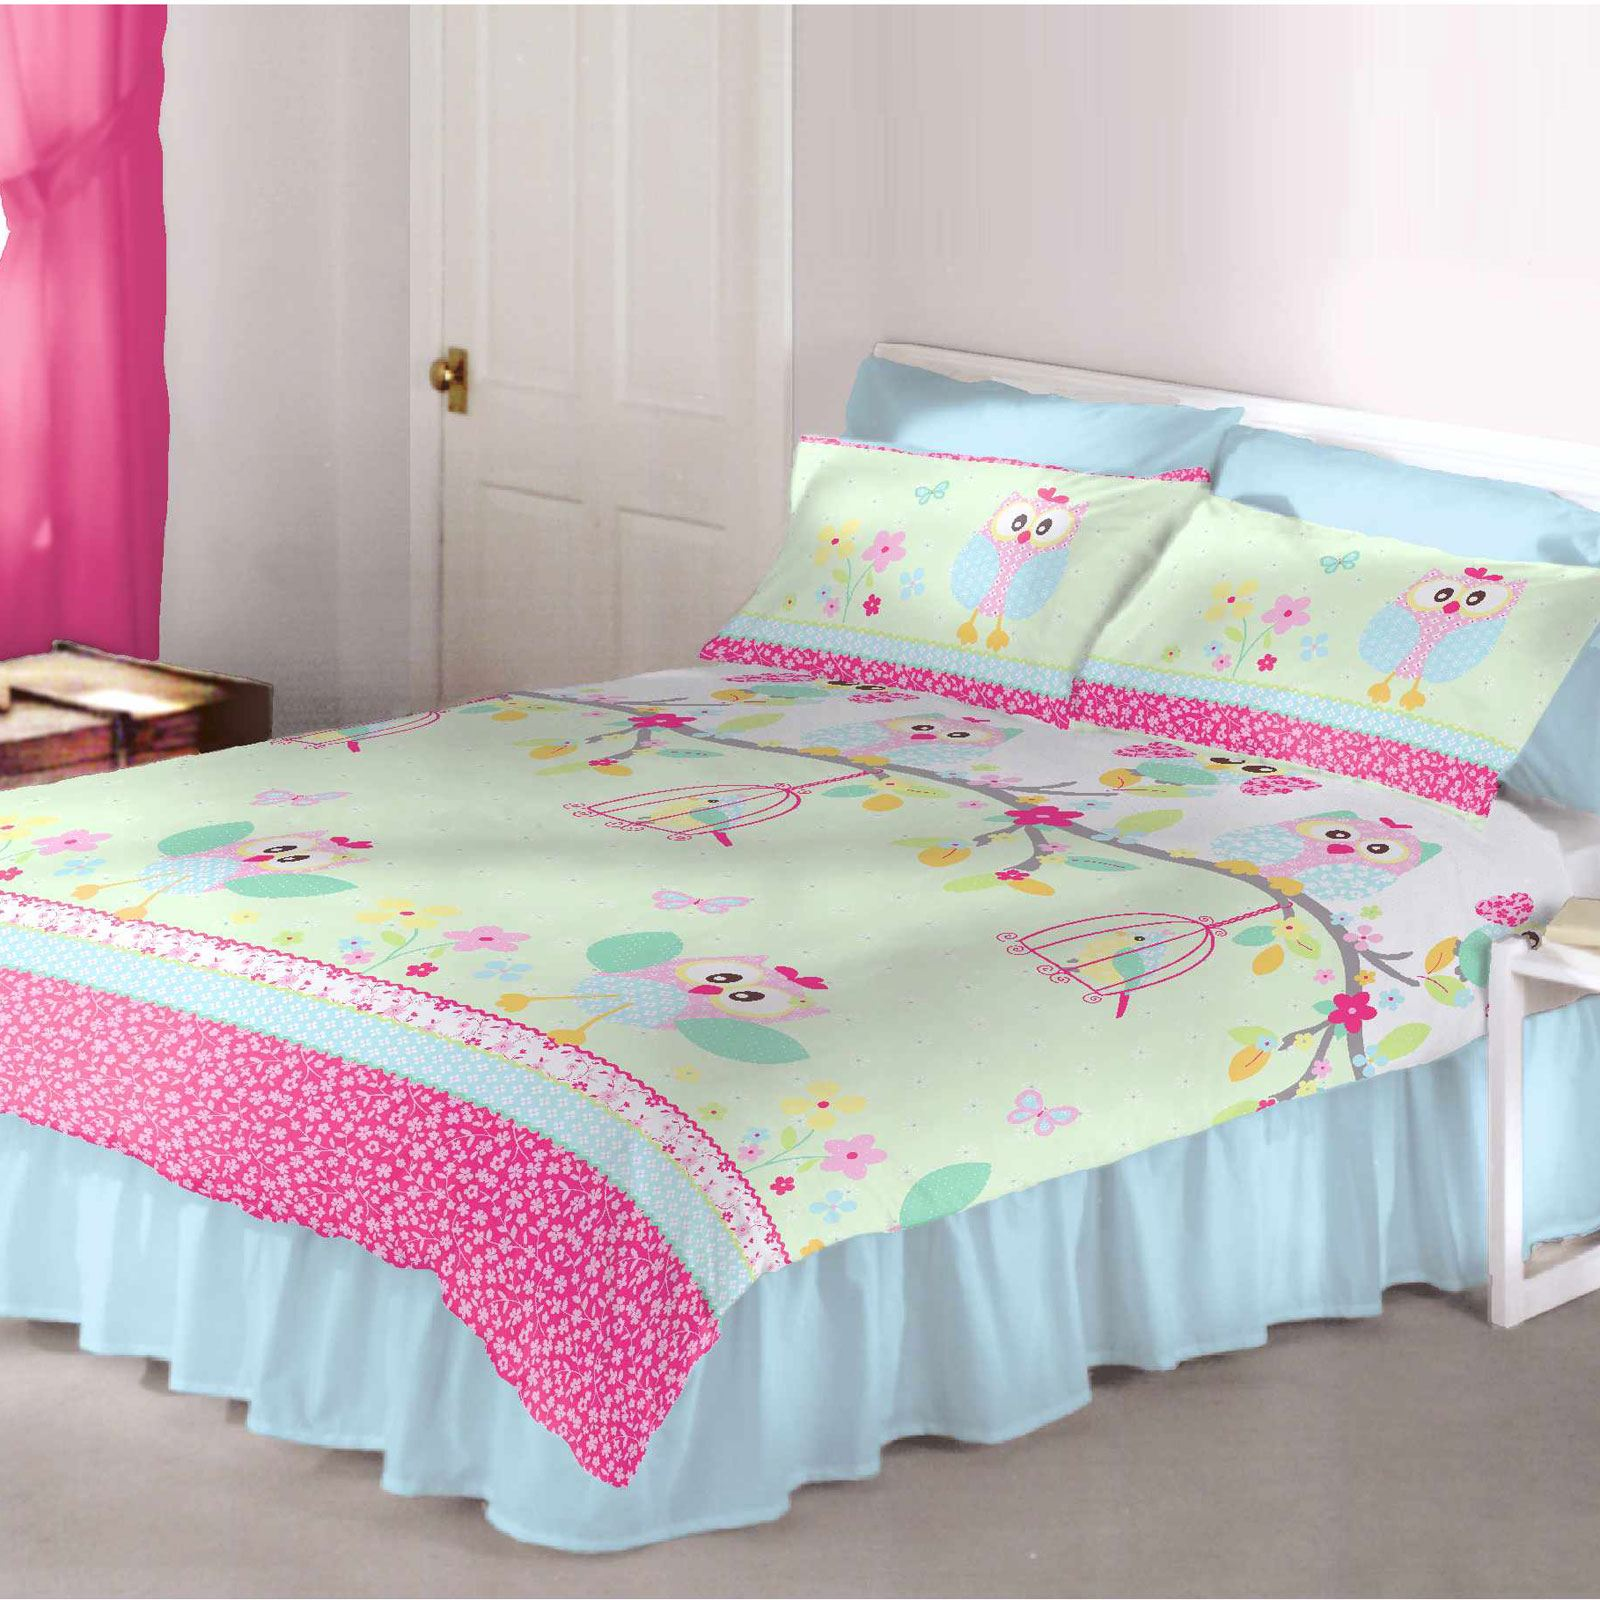 Girls Bedding Girls Bedding Single And Double Polycotton Duvet Covers